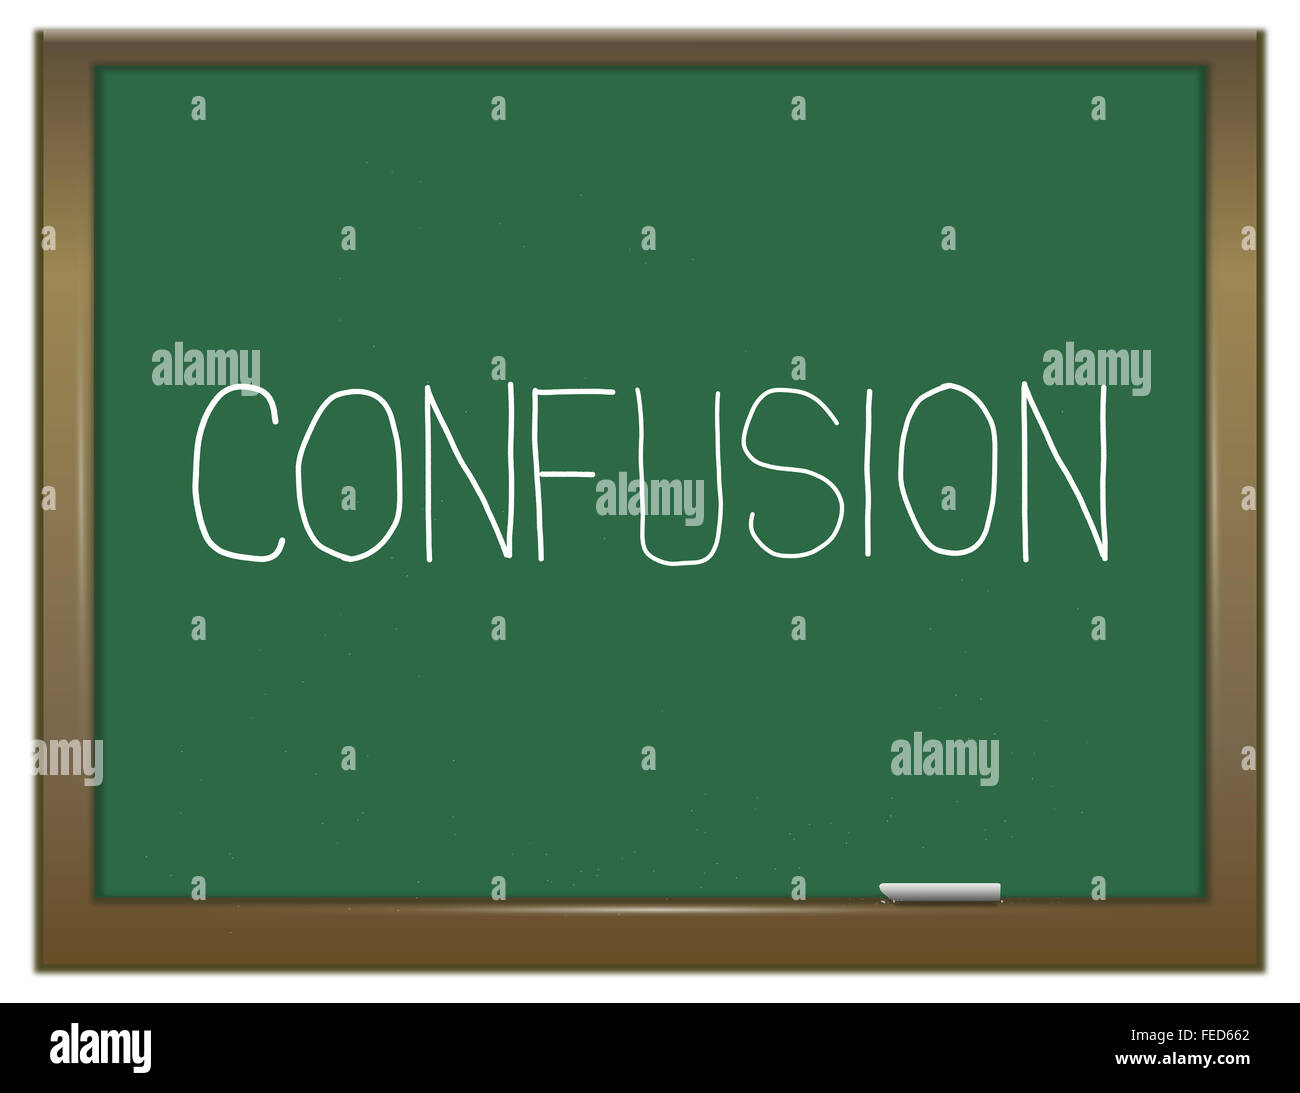 Confusion concept. - Stock Image